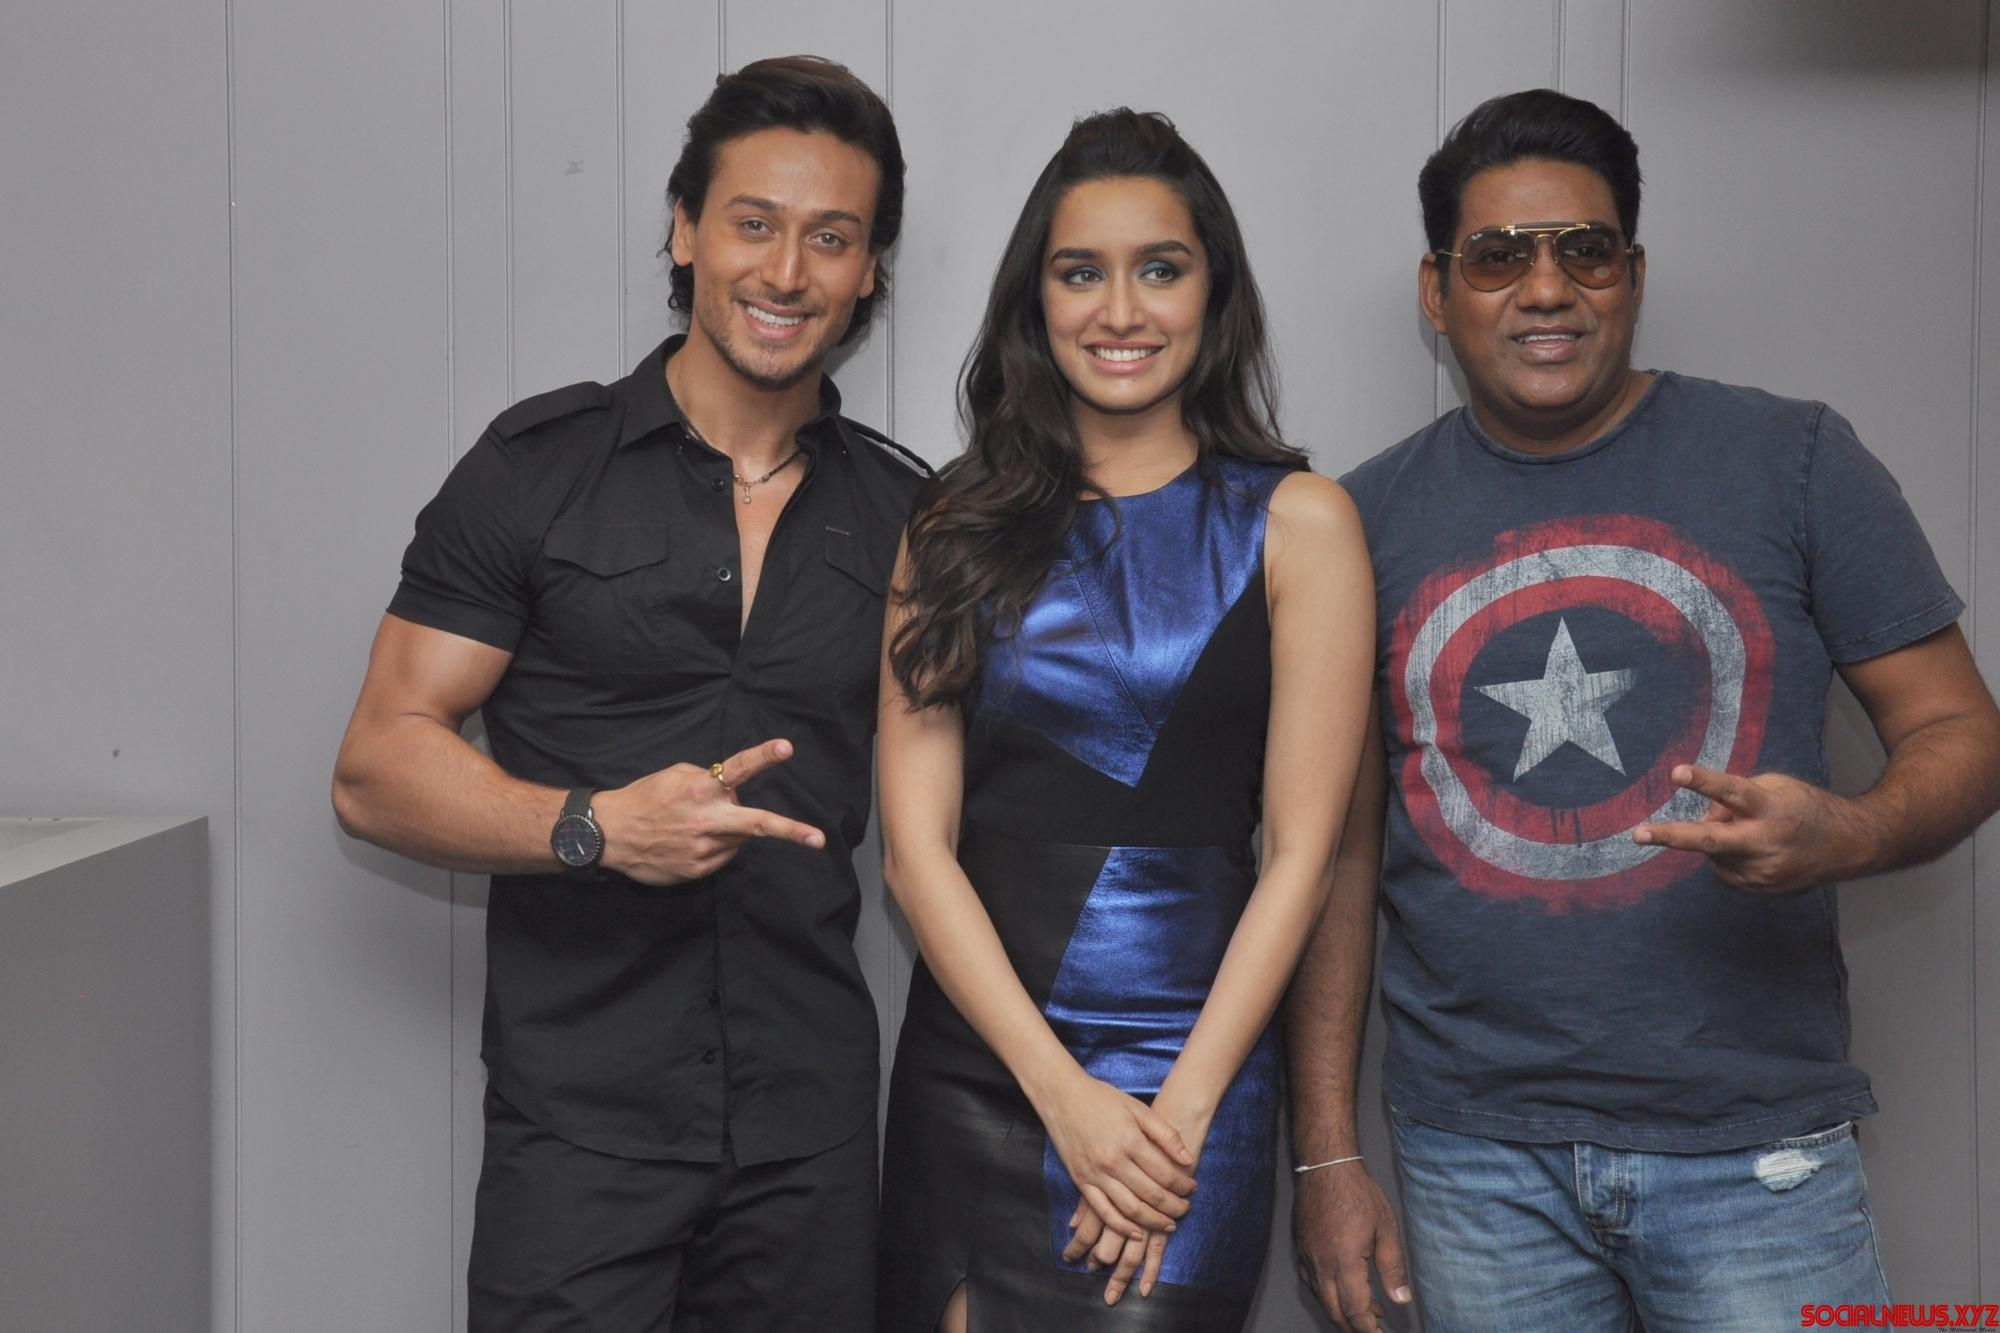 'Baaghi' mints close to Rs.60 crore in opening week